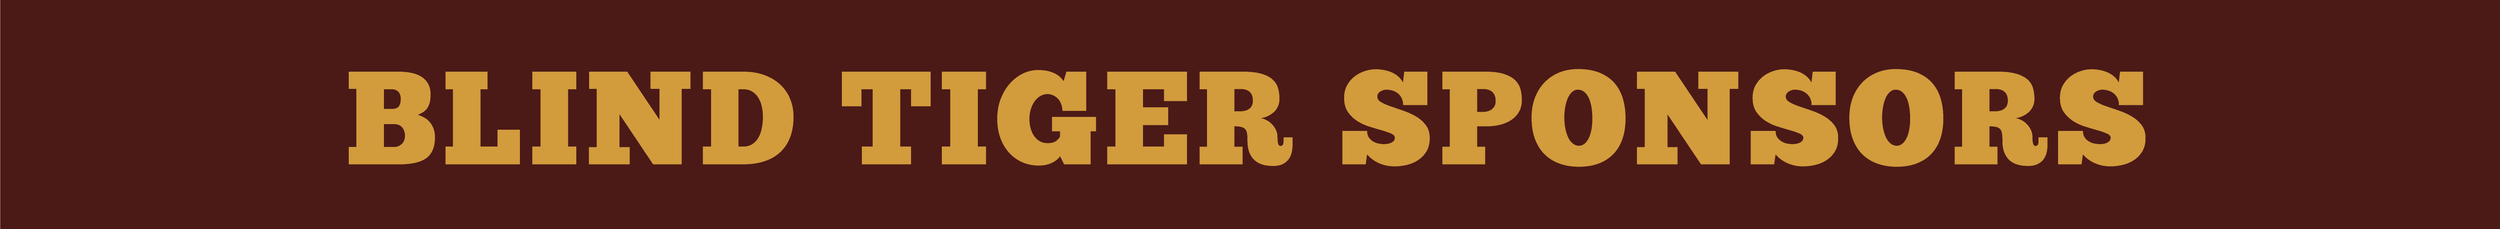 18_CRAFTED_SponsorEmailBanner-06.png